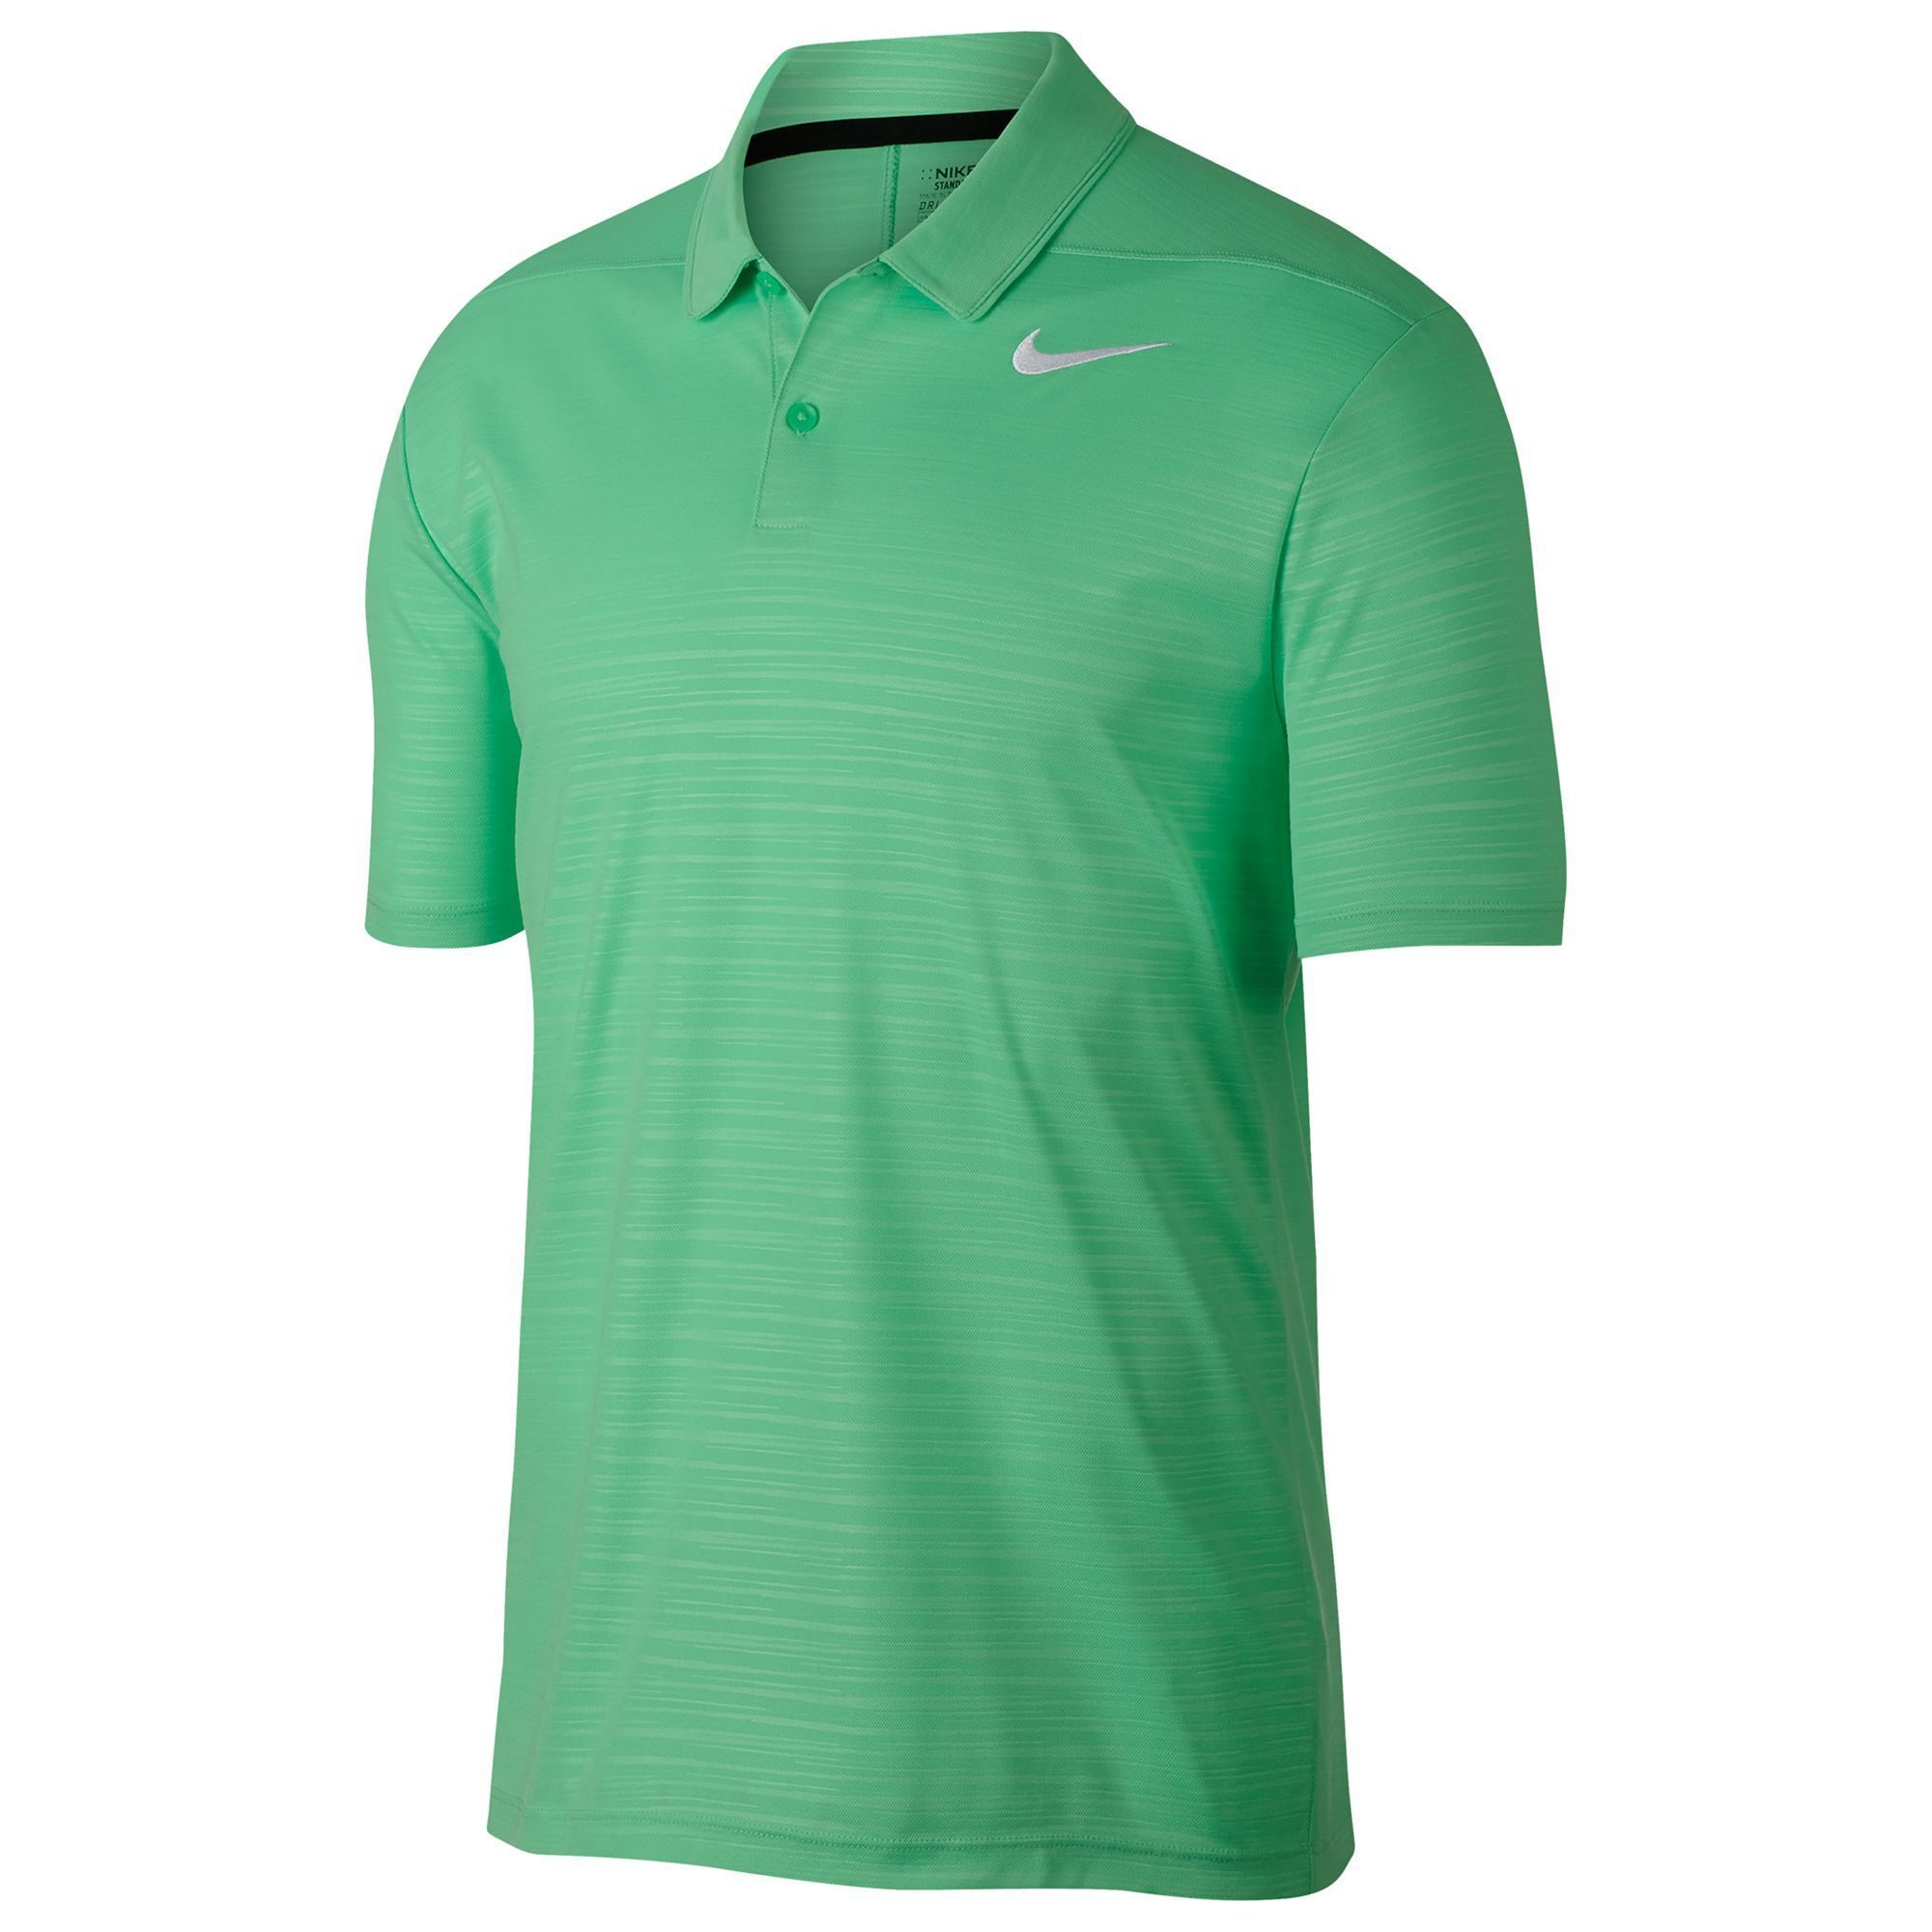 4d883ae44beaa Men s Nike Essential Regular-Fit Dri-FIT Embossed Performance Golf Polo